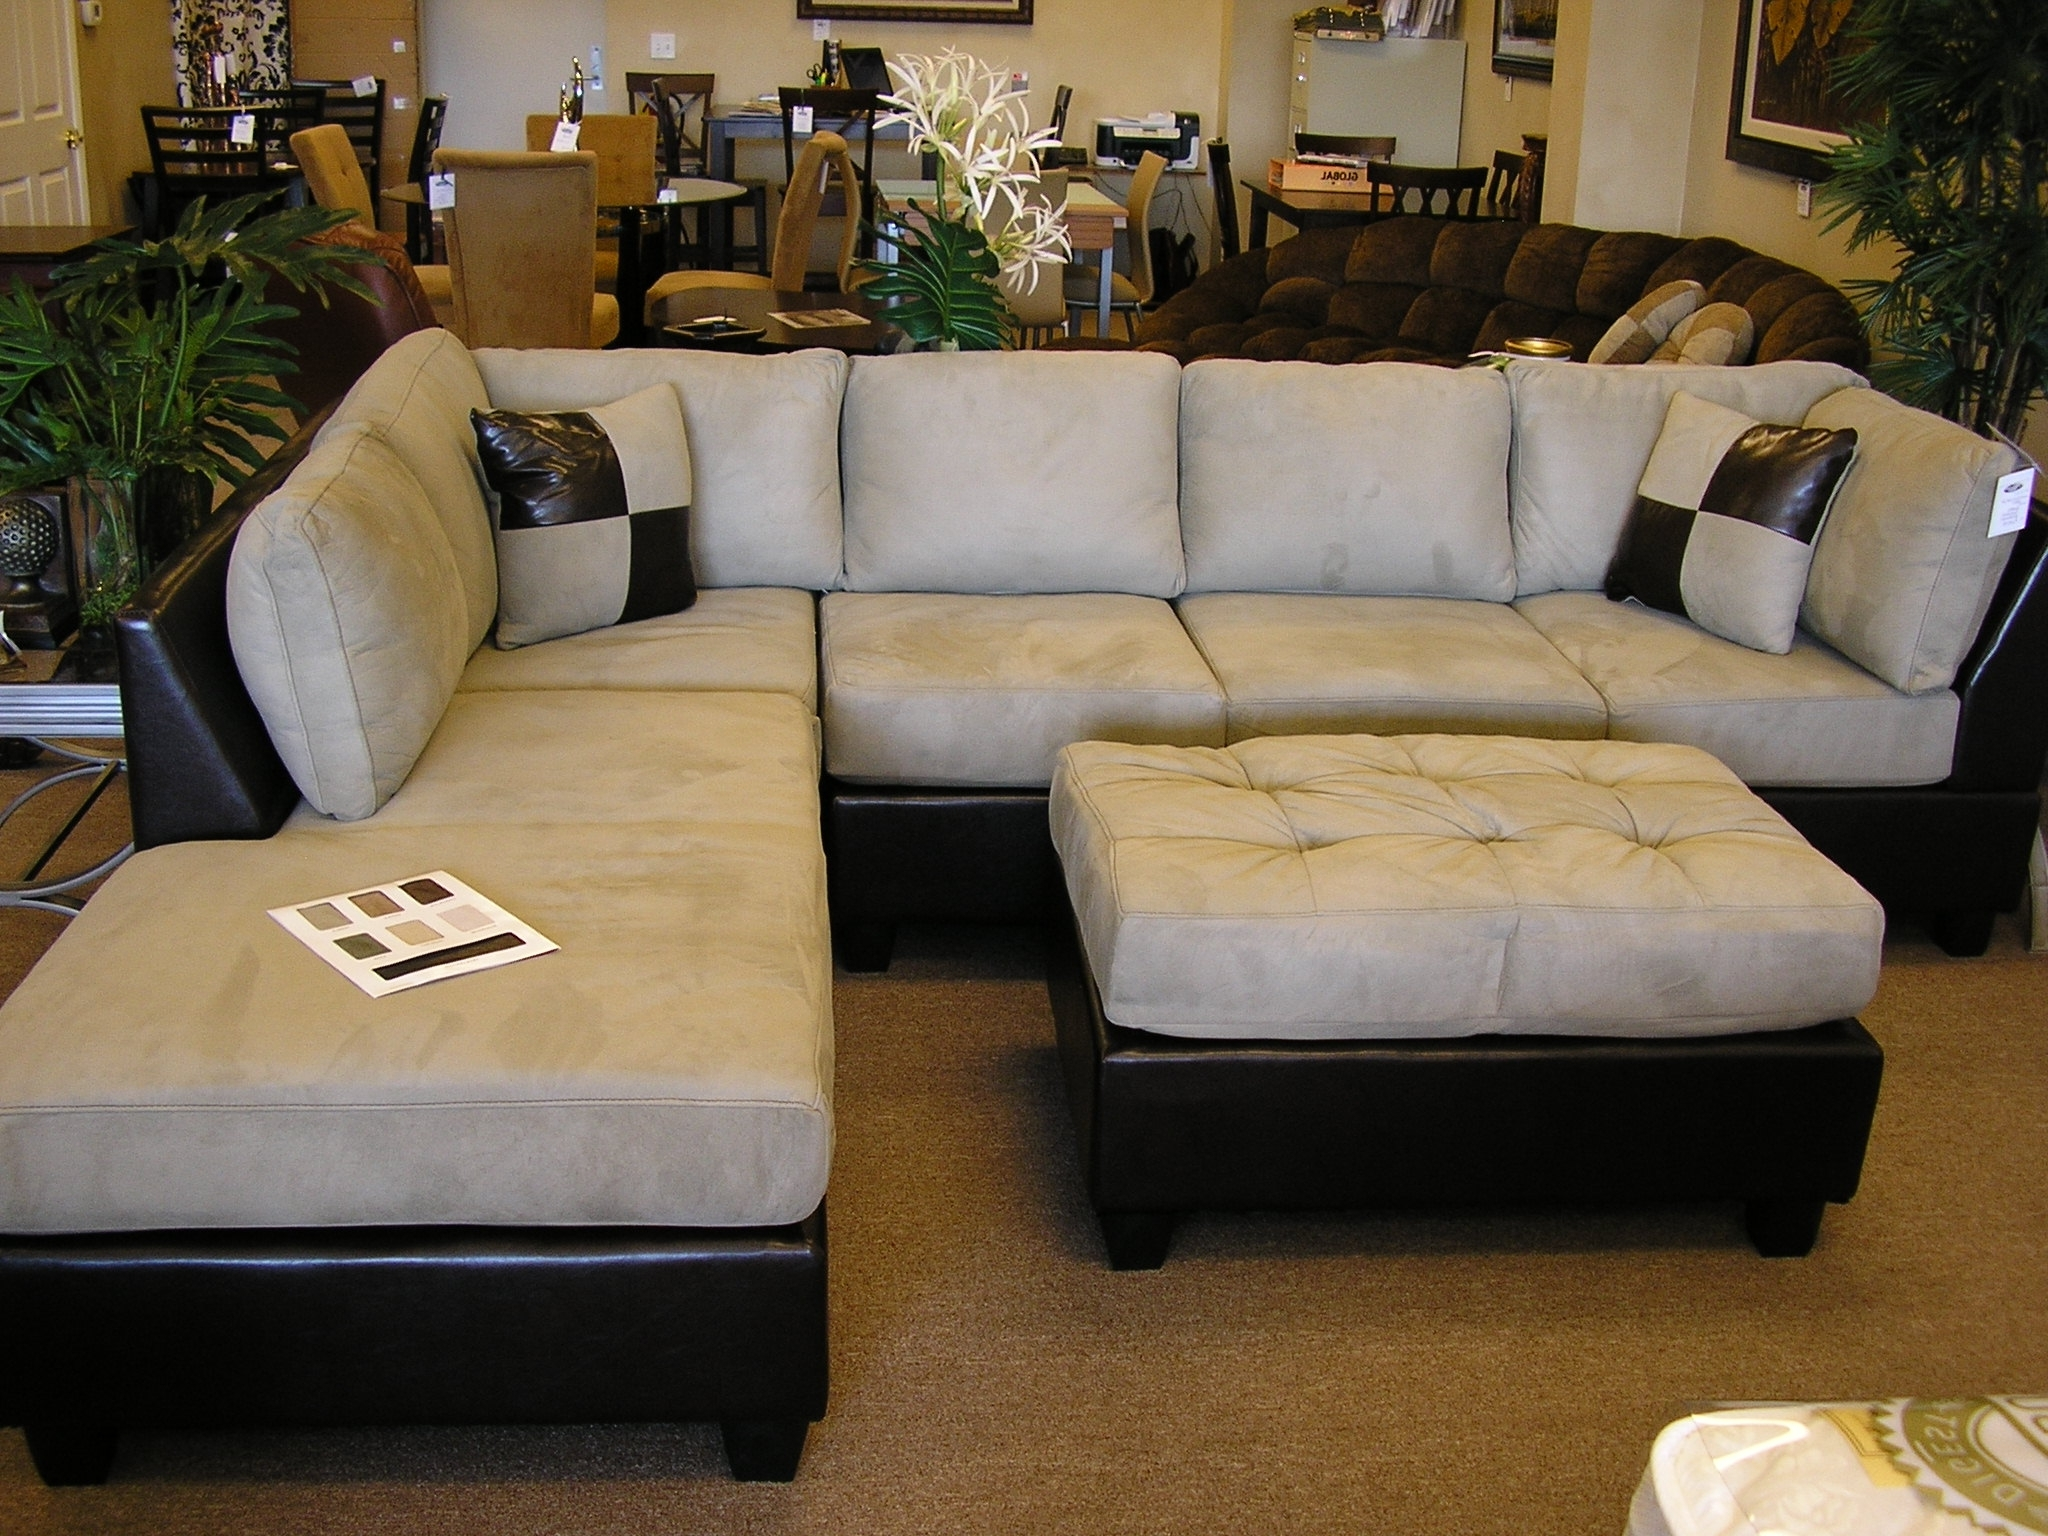 Best And Newest Slipcovers For Sectional Sofas With Chaise Within New Sectional Sofa With Chaise And Ottoman 74 On Stretch (View 2 of 15)